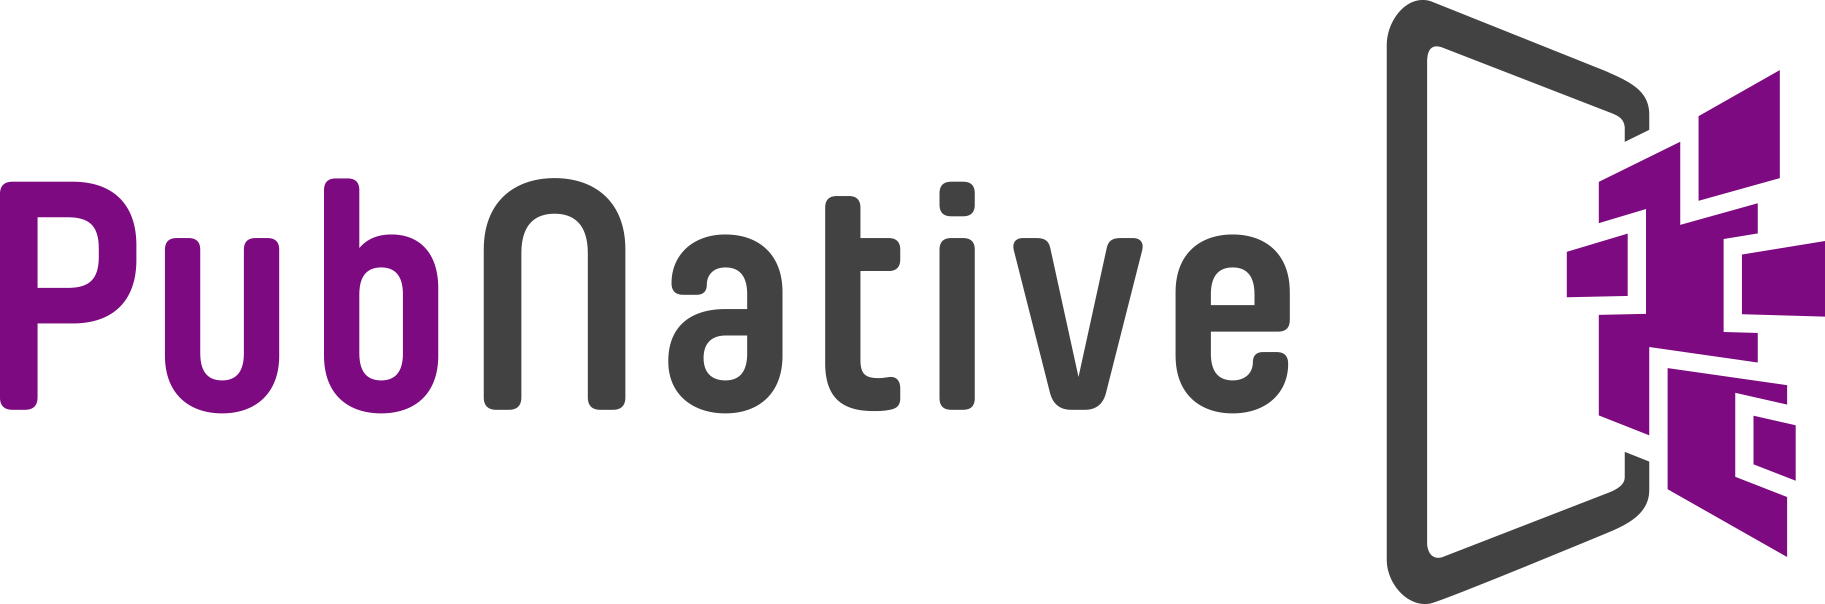 Pubnative-RGB